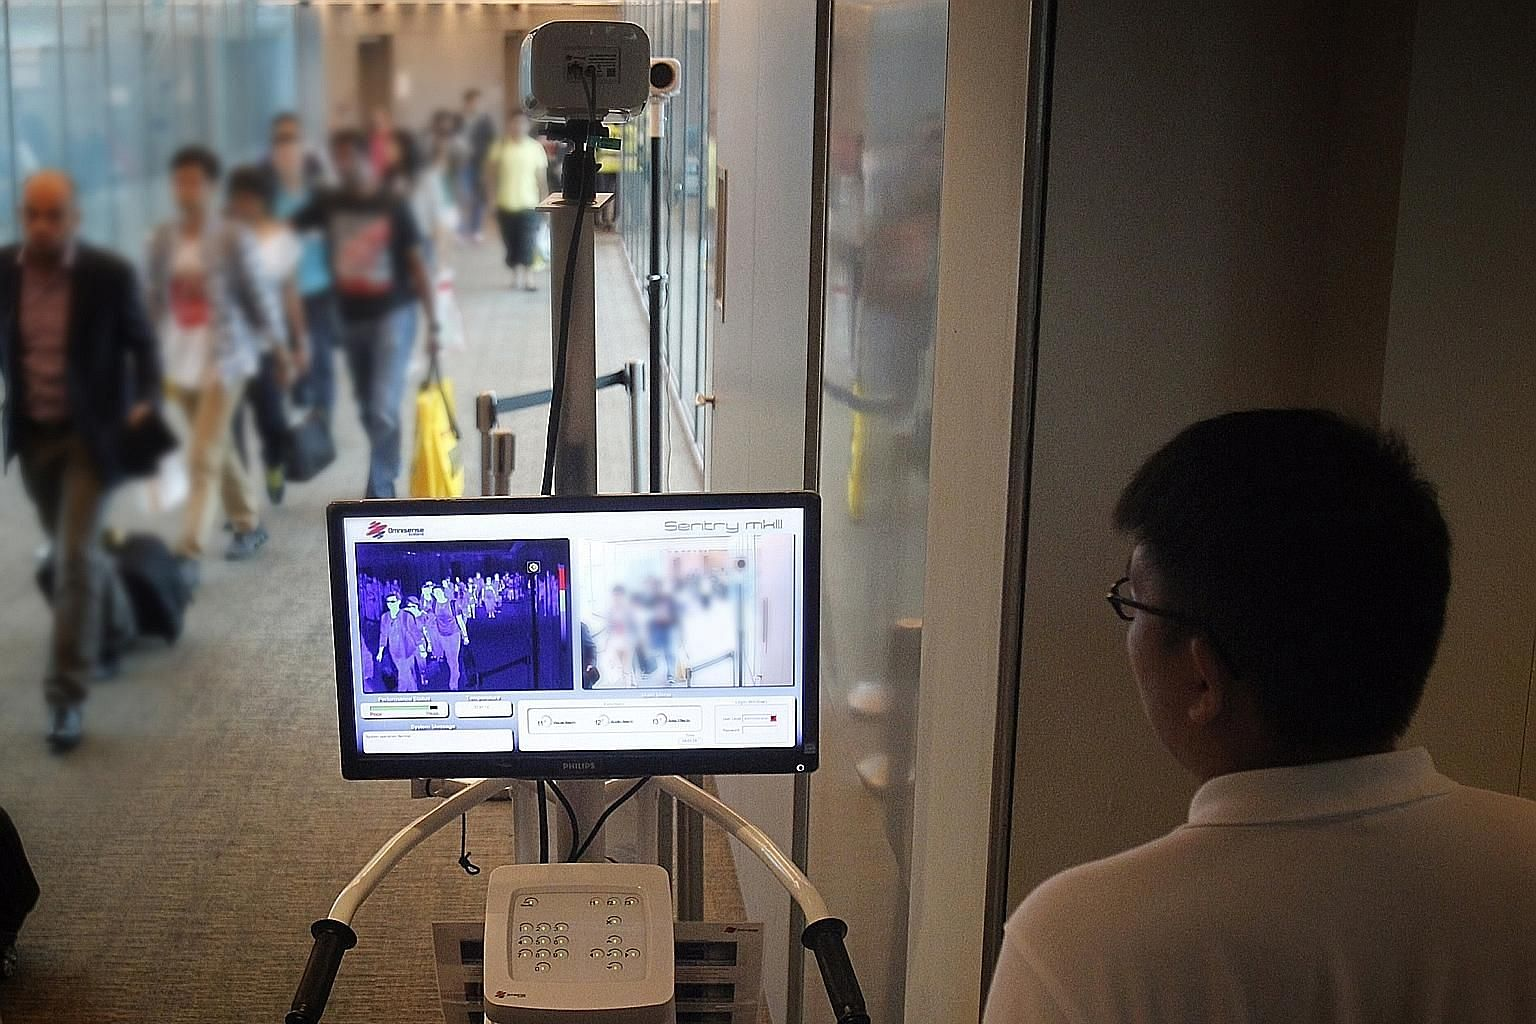 Passengers arriving at Changi Airport walking past a thermal scanner when temperature screening was on for the Middle East respiratory syndrome (Mers) in 2014. With inexpensive travel and increased connectivity, pathogens cross borders with alarming